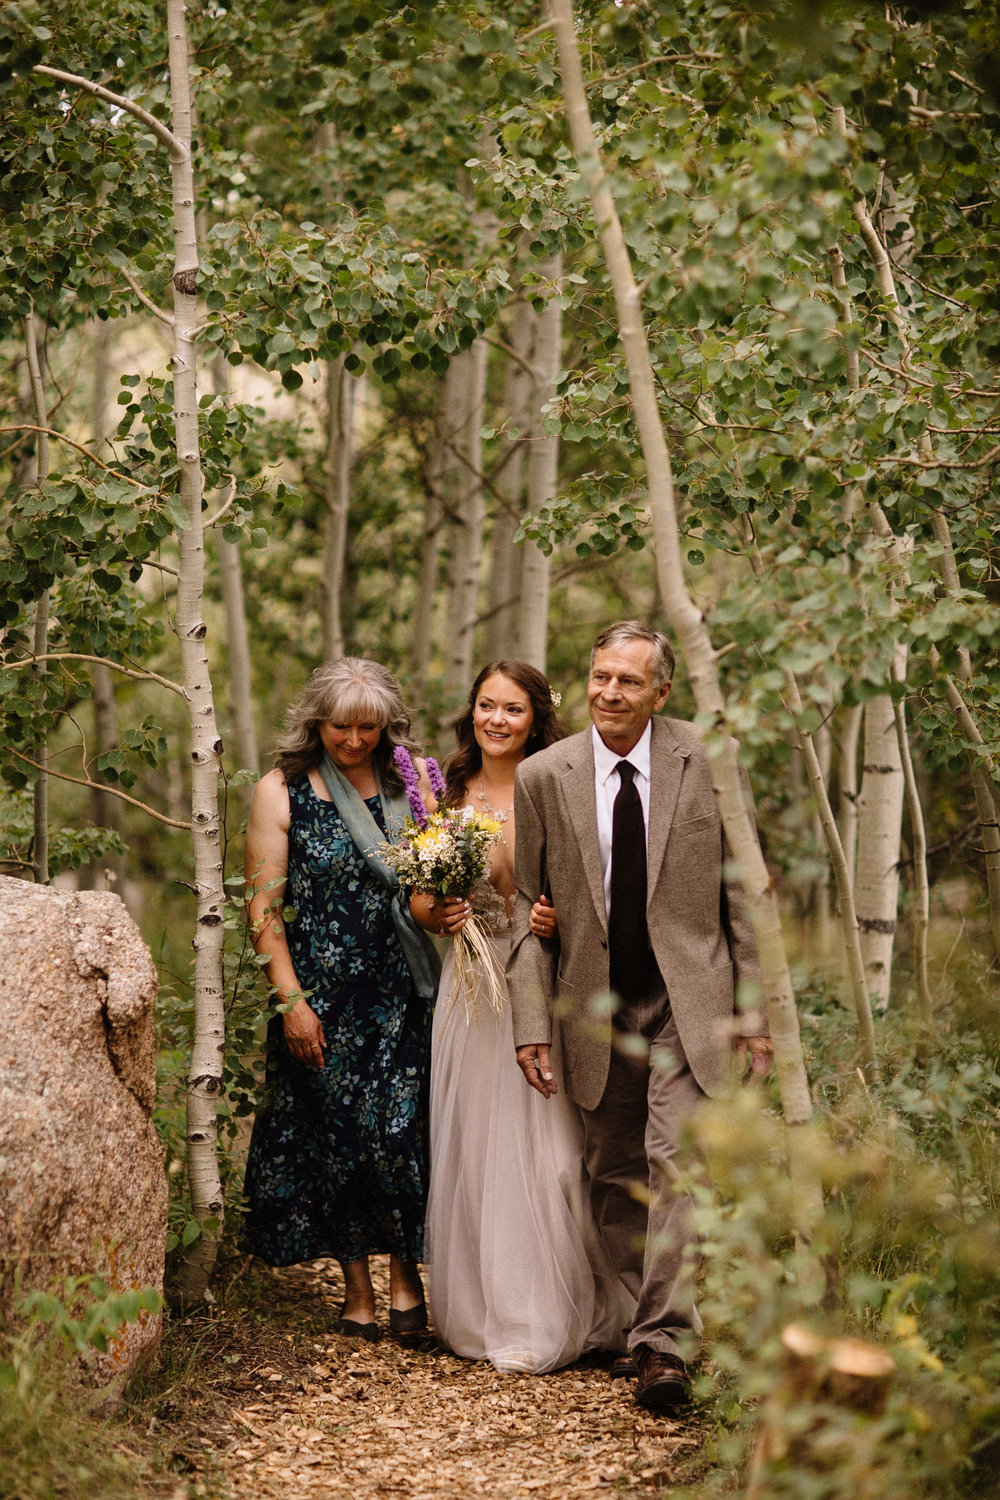 Liz Osban Photography Vedauwoo Buford Wyoming Happy Jack Wedding Elopement Destination Small Forest Cheyenne Laramie Medicine Bow National Forest Ceremony Sarah Taylor2.jpg